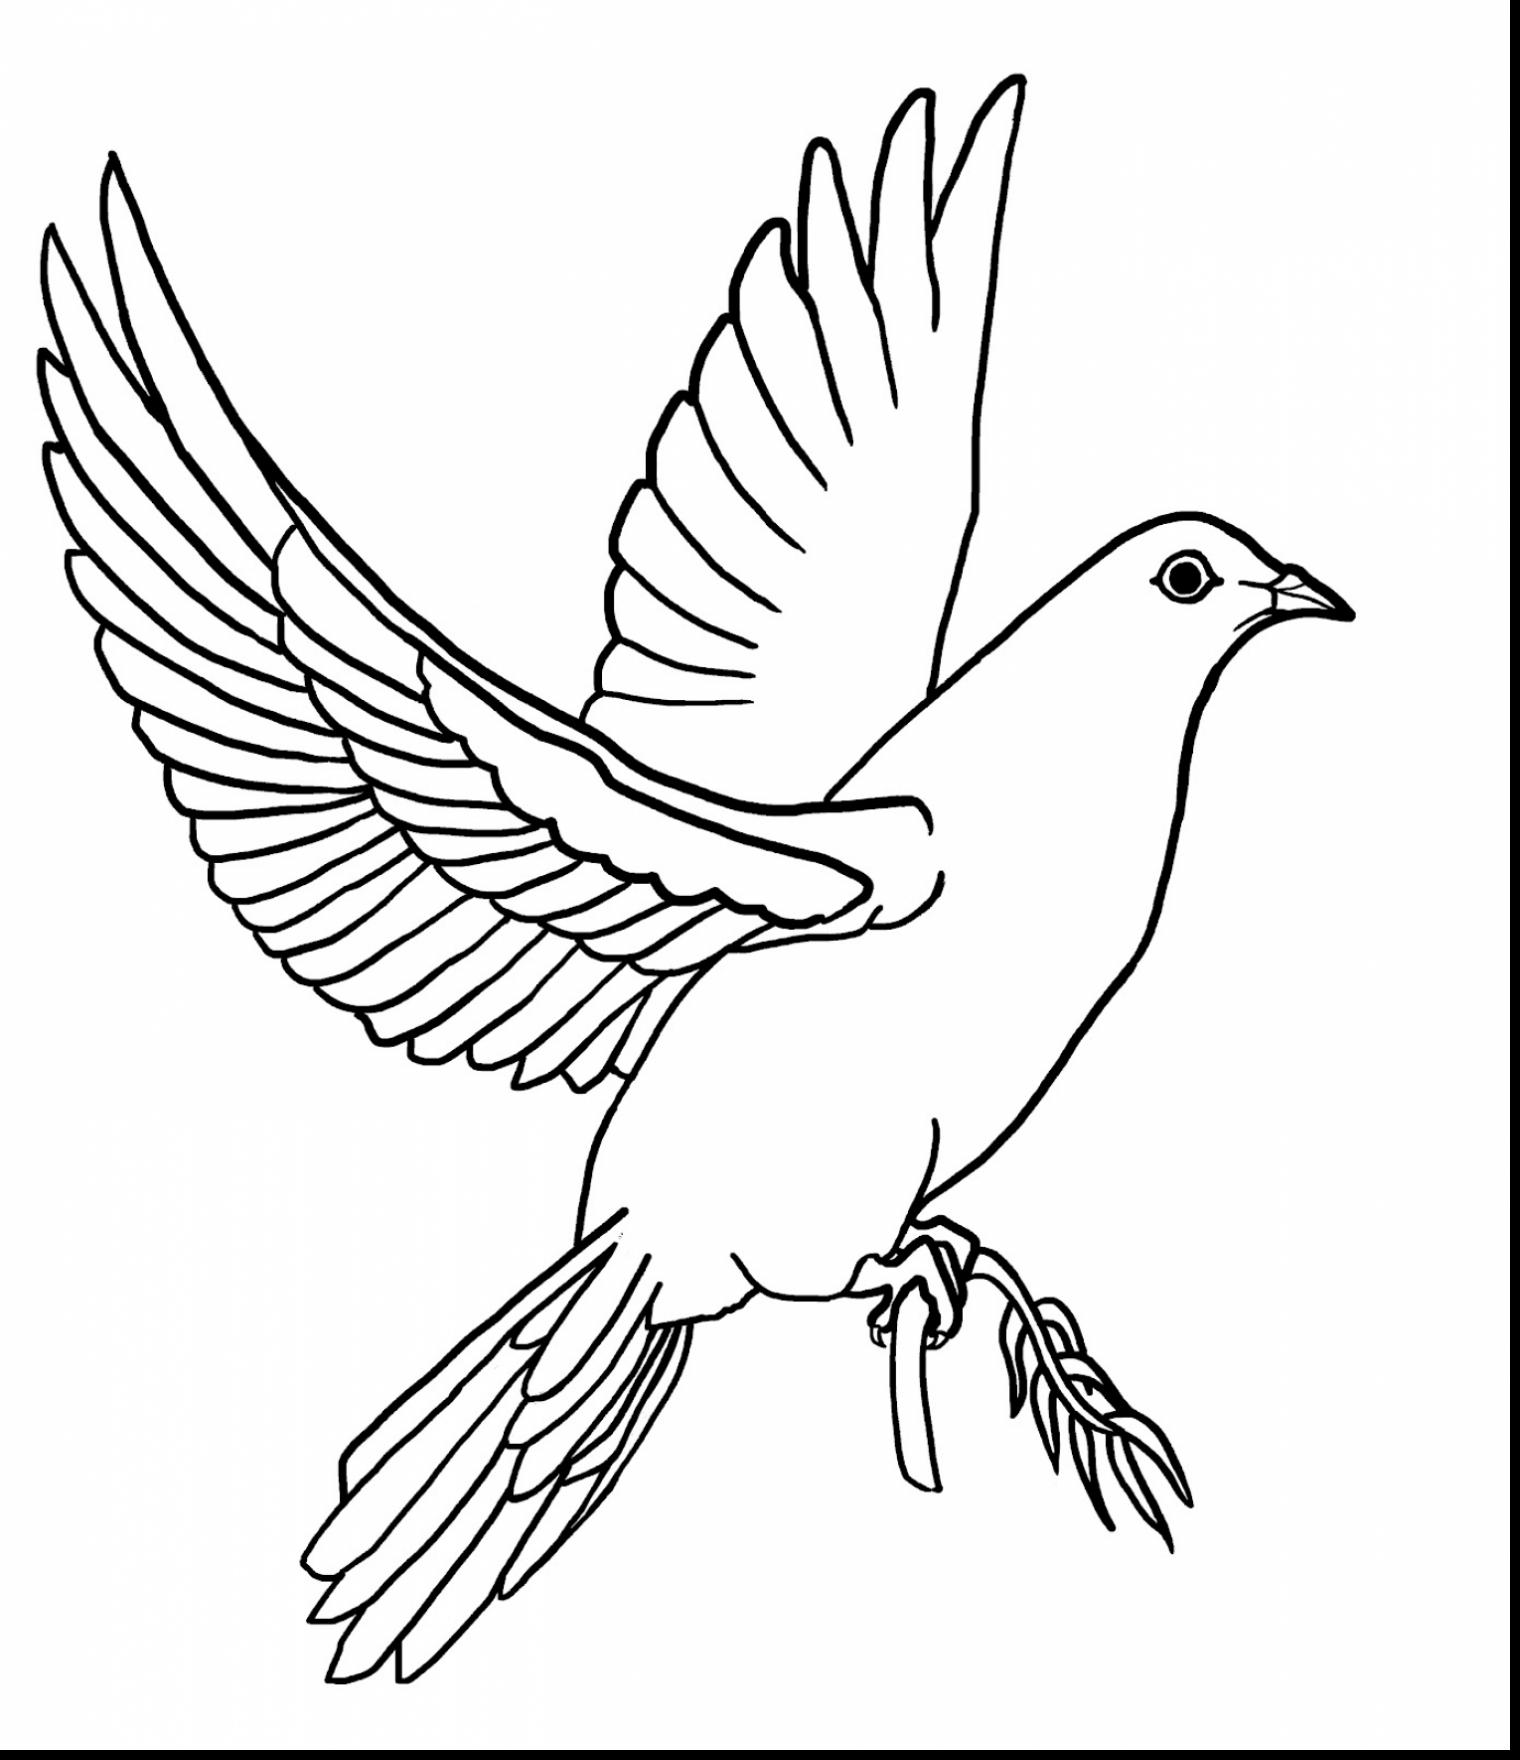 1520x1760 Excellent Holy Spirit Dove Coloring Page With Dove Coloring Page